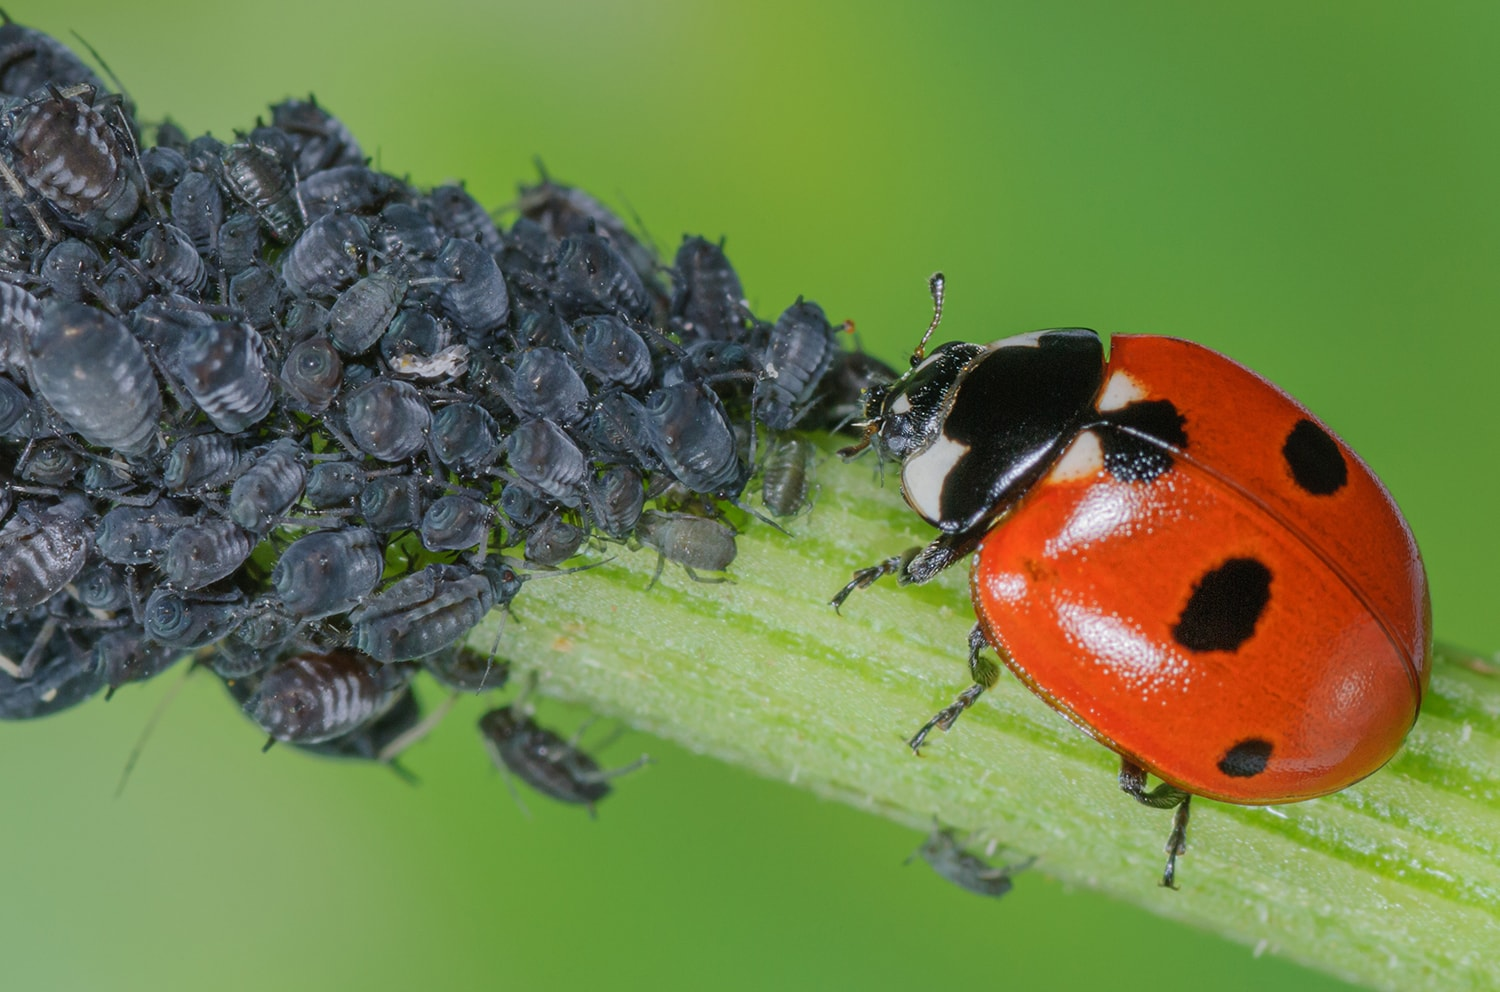 Lady Bug Eating Pests